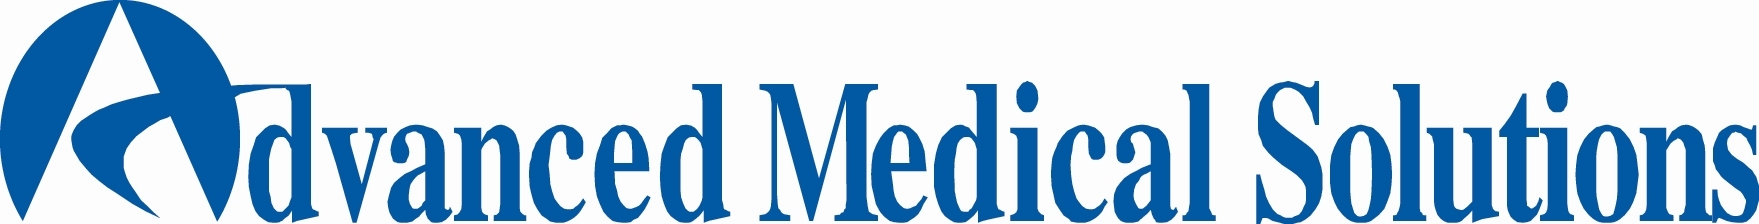 Advanced Medical Solutions Group plc logo